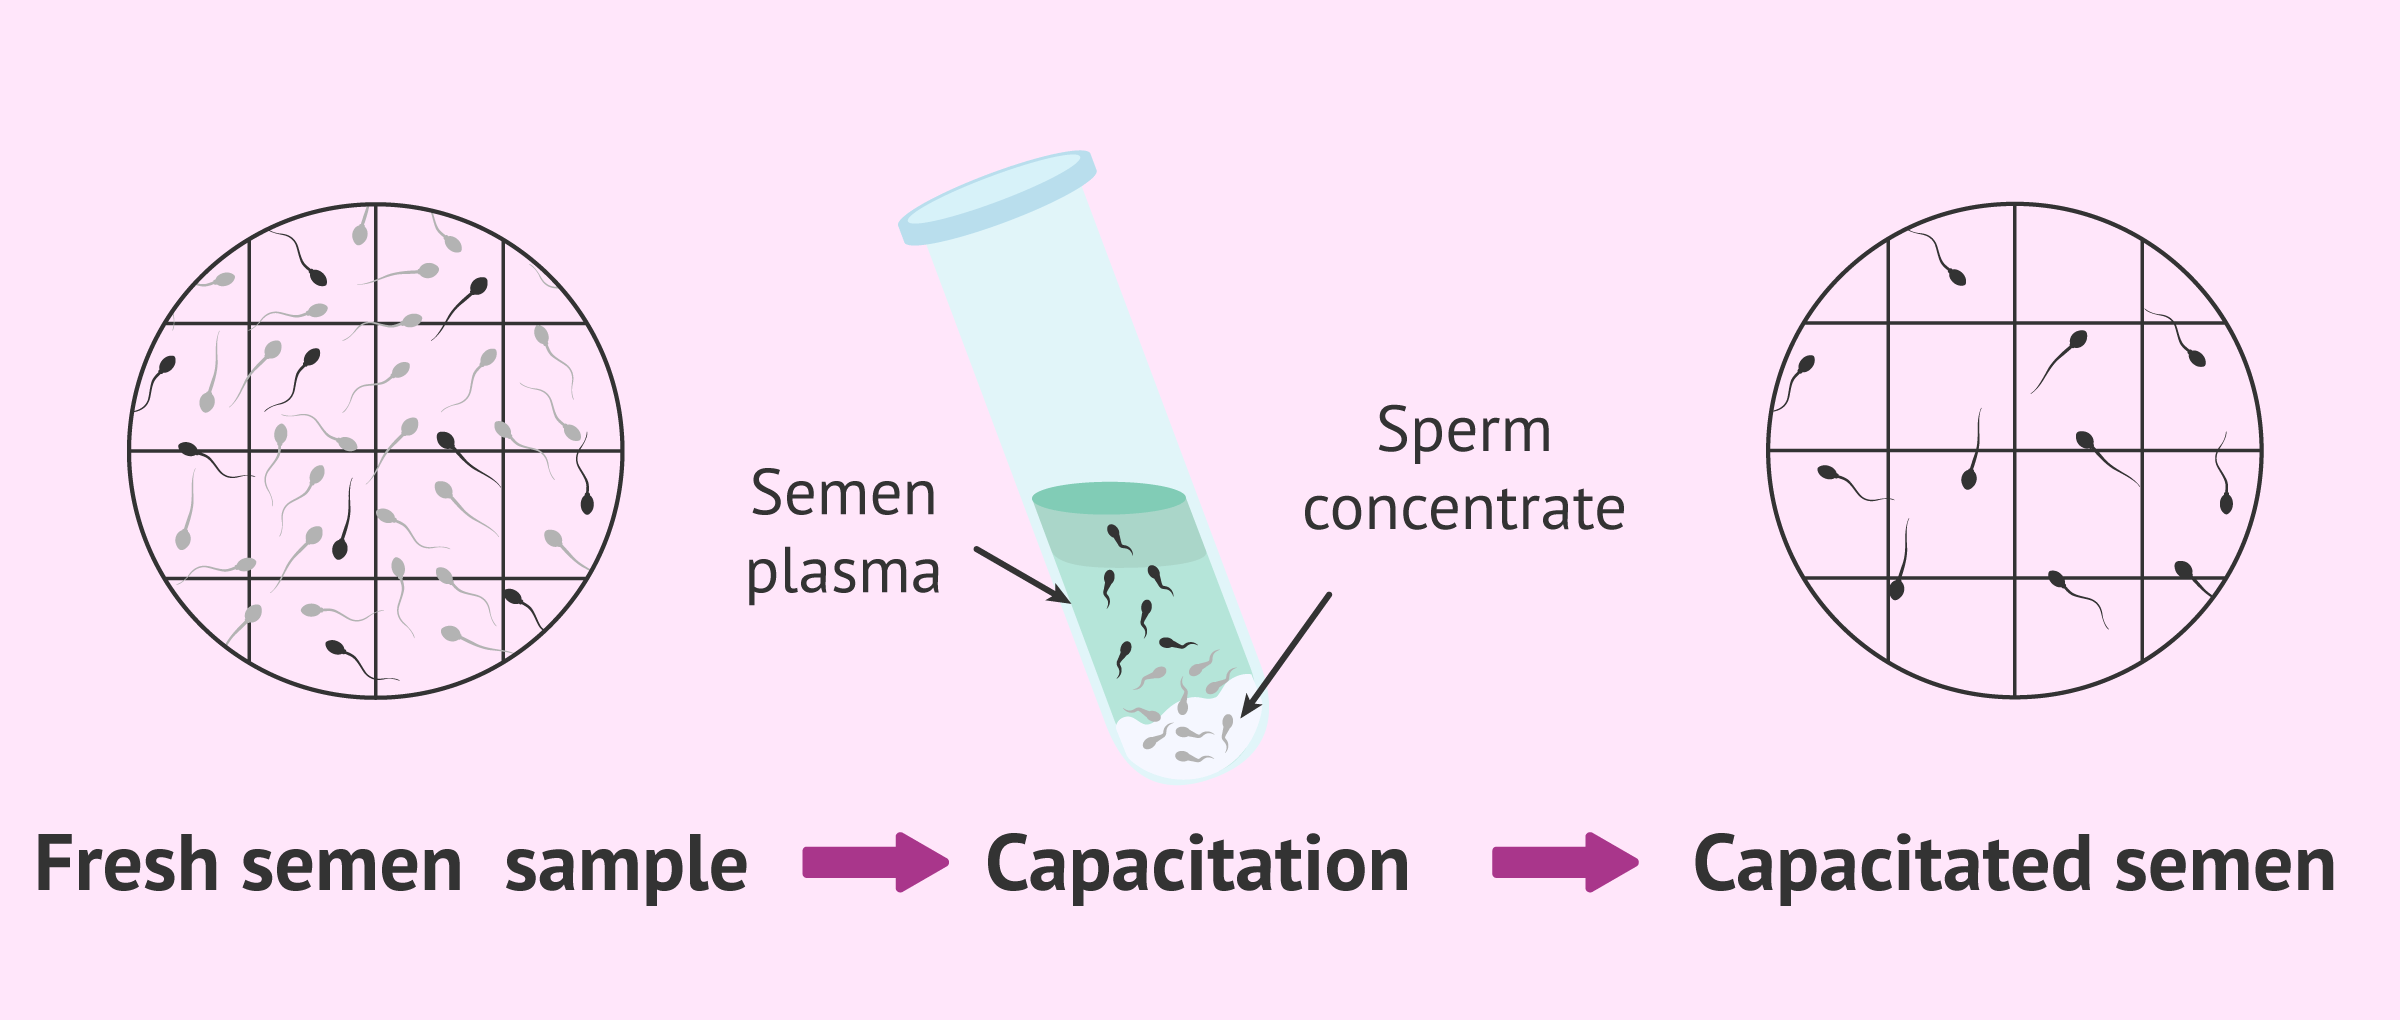 Results of the advanced semen analysis